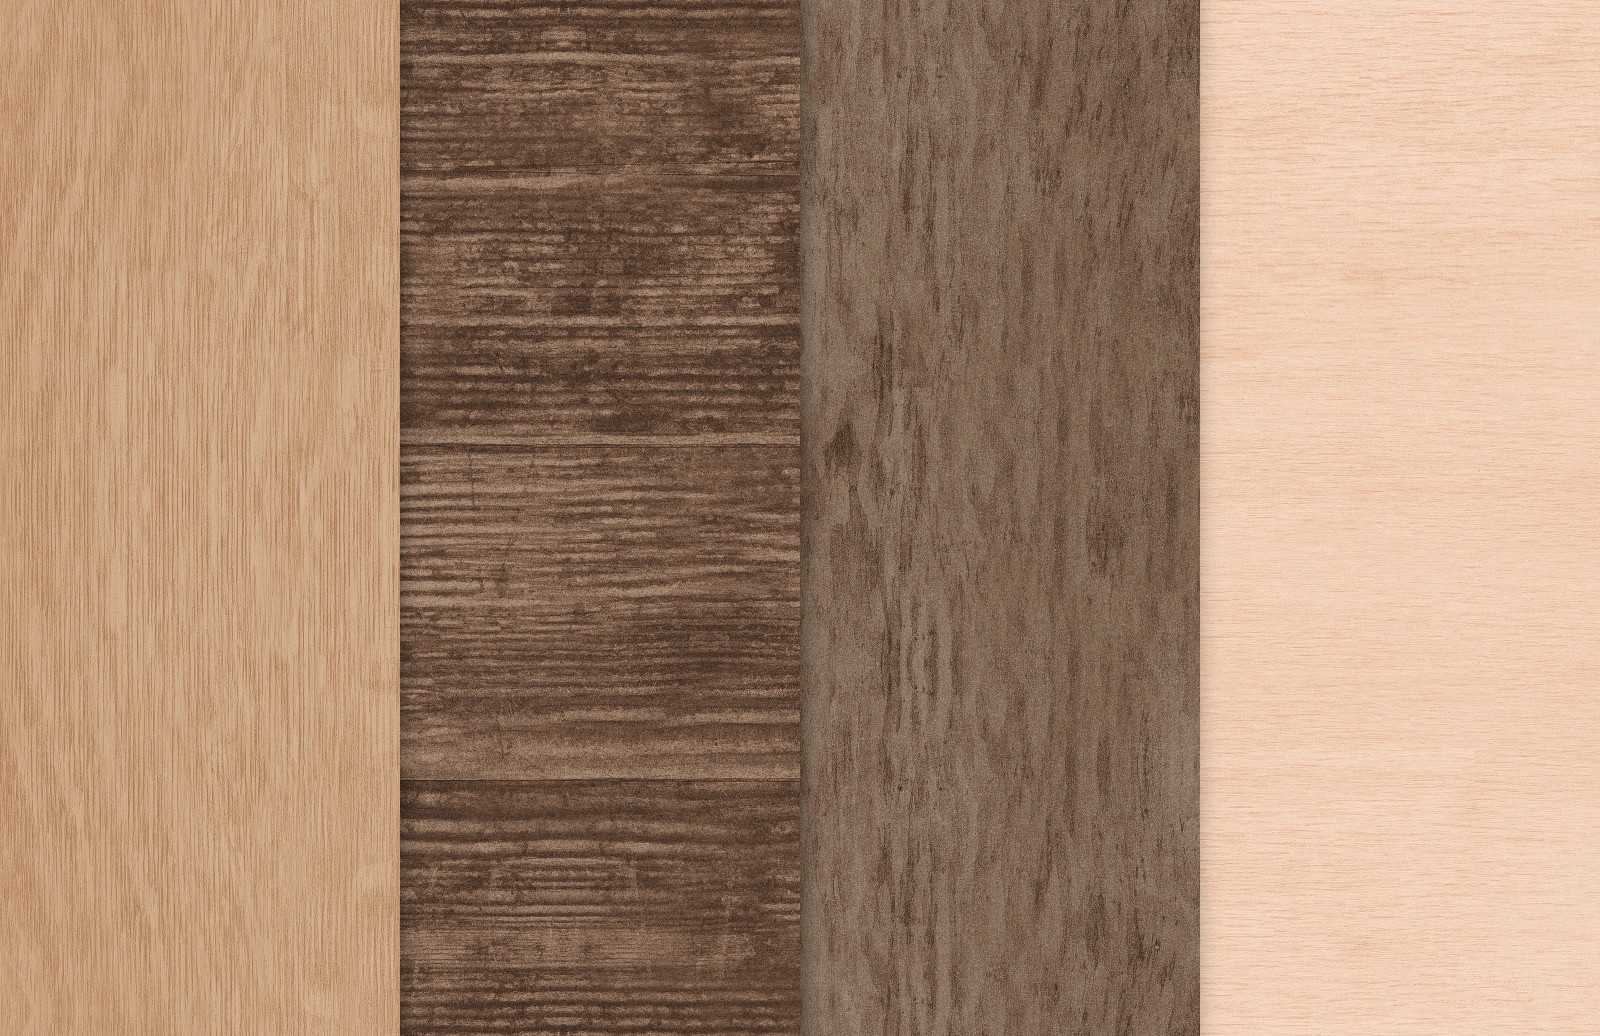 Free Seamless Wood Textures 2